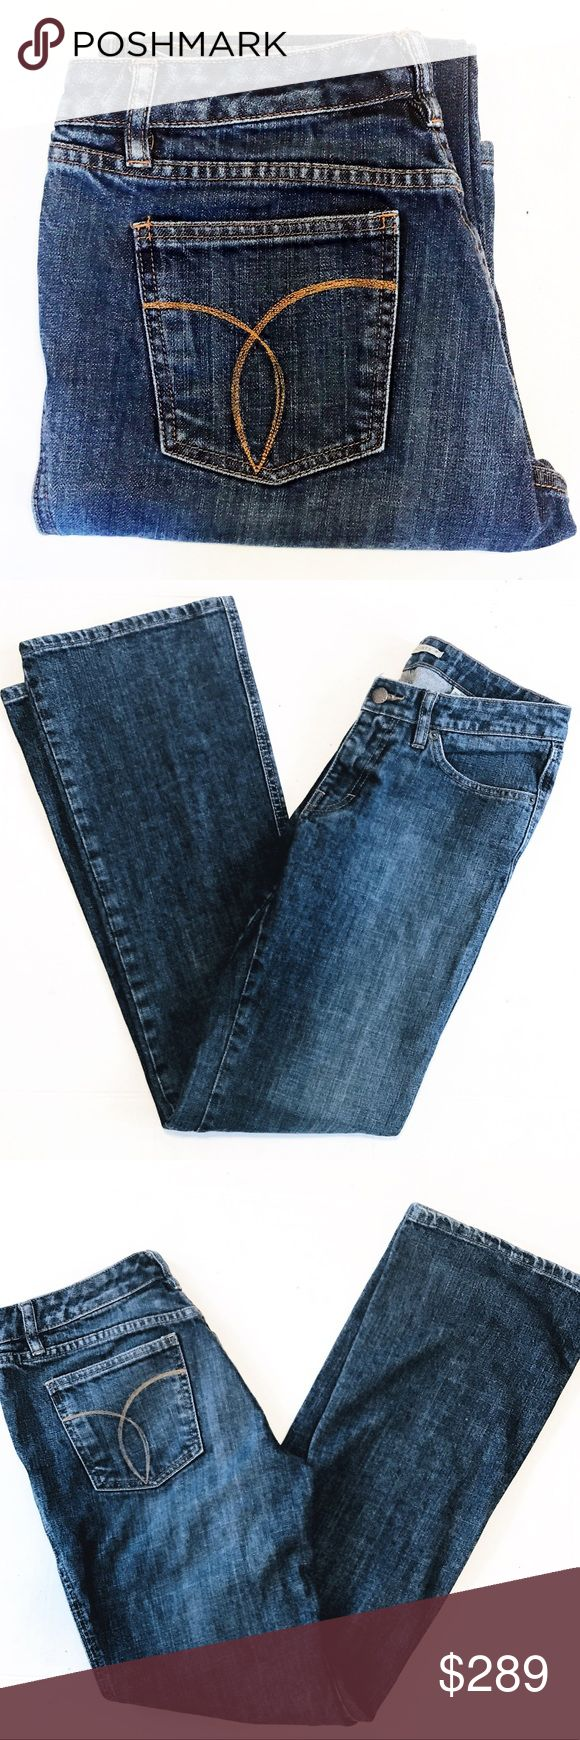 Vintage Sergio Valente Jeans Vintage Sergio Valente Jeans  Item: Vintage Sergio Valente Jeans Color: blue  Style: Vintage stretch jeans by Sergio Valente  Size: 28  Inseam: 30  **Please see all photos. Feel free to ask any questions before purchase** Sergio Valente Jeans Straight Leg